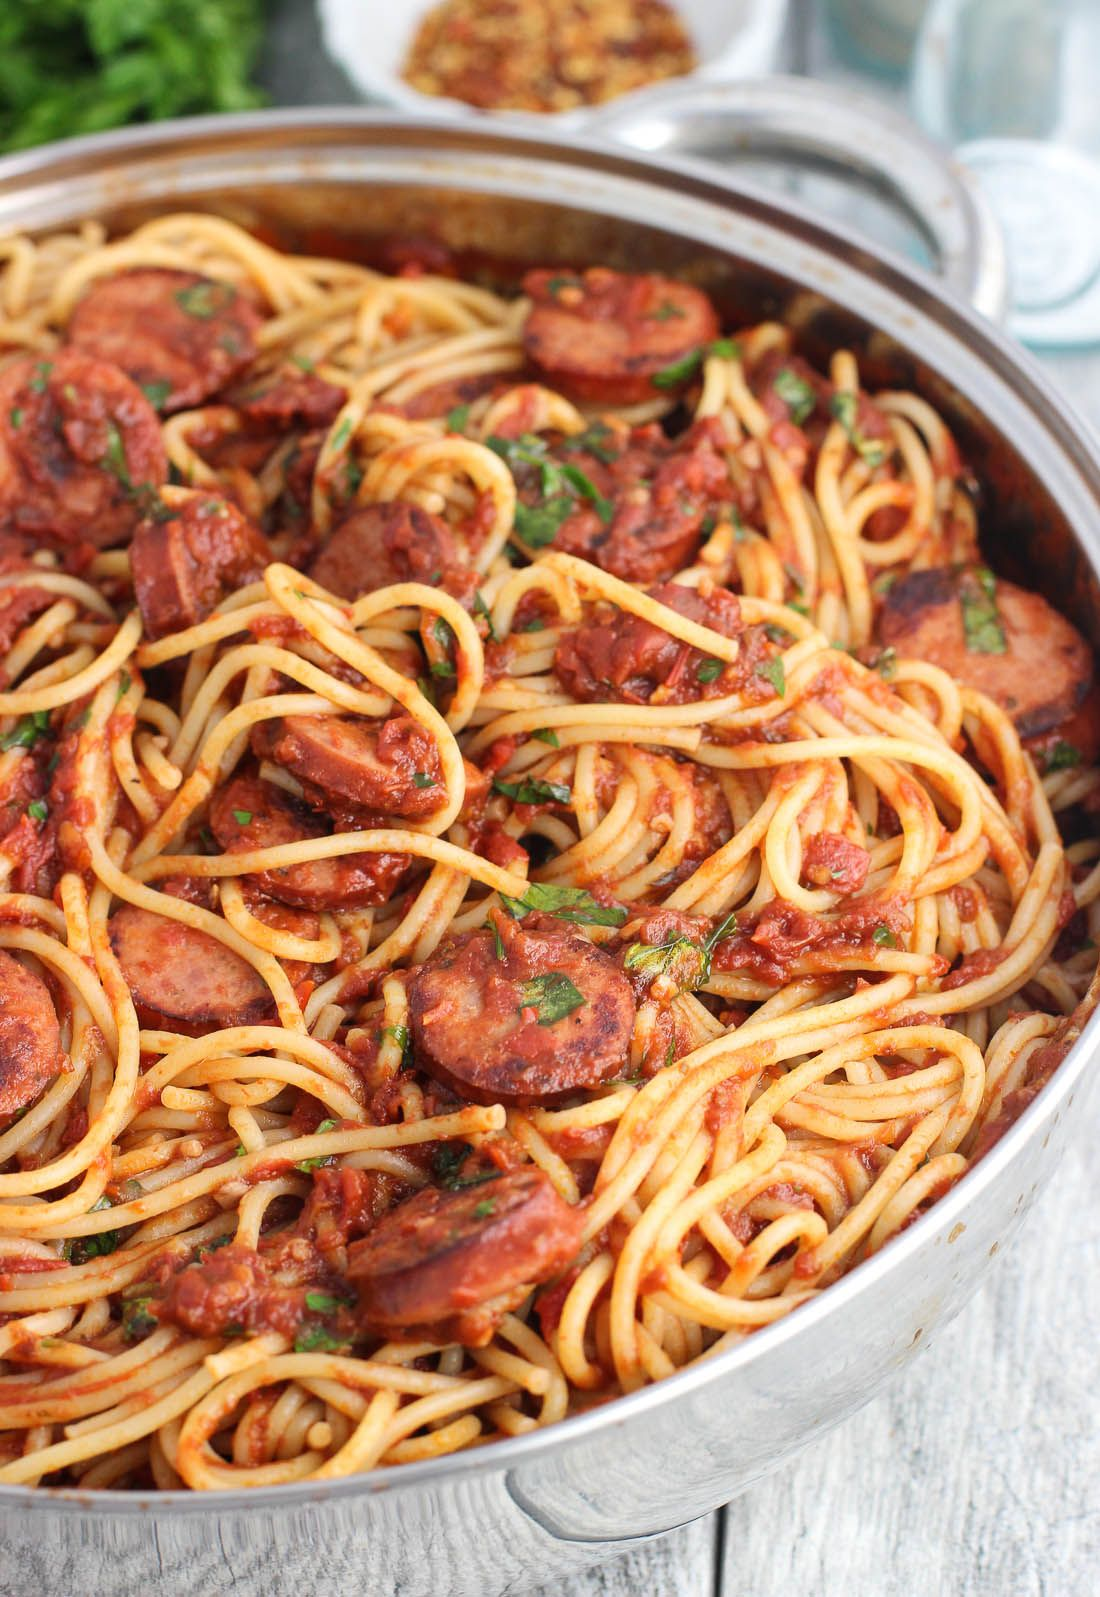 Smoked sausage fra diavolo is a pasta dish with a homemade ...